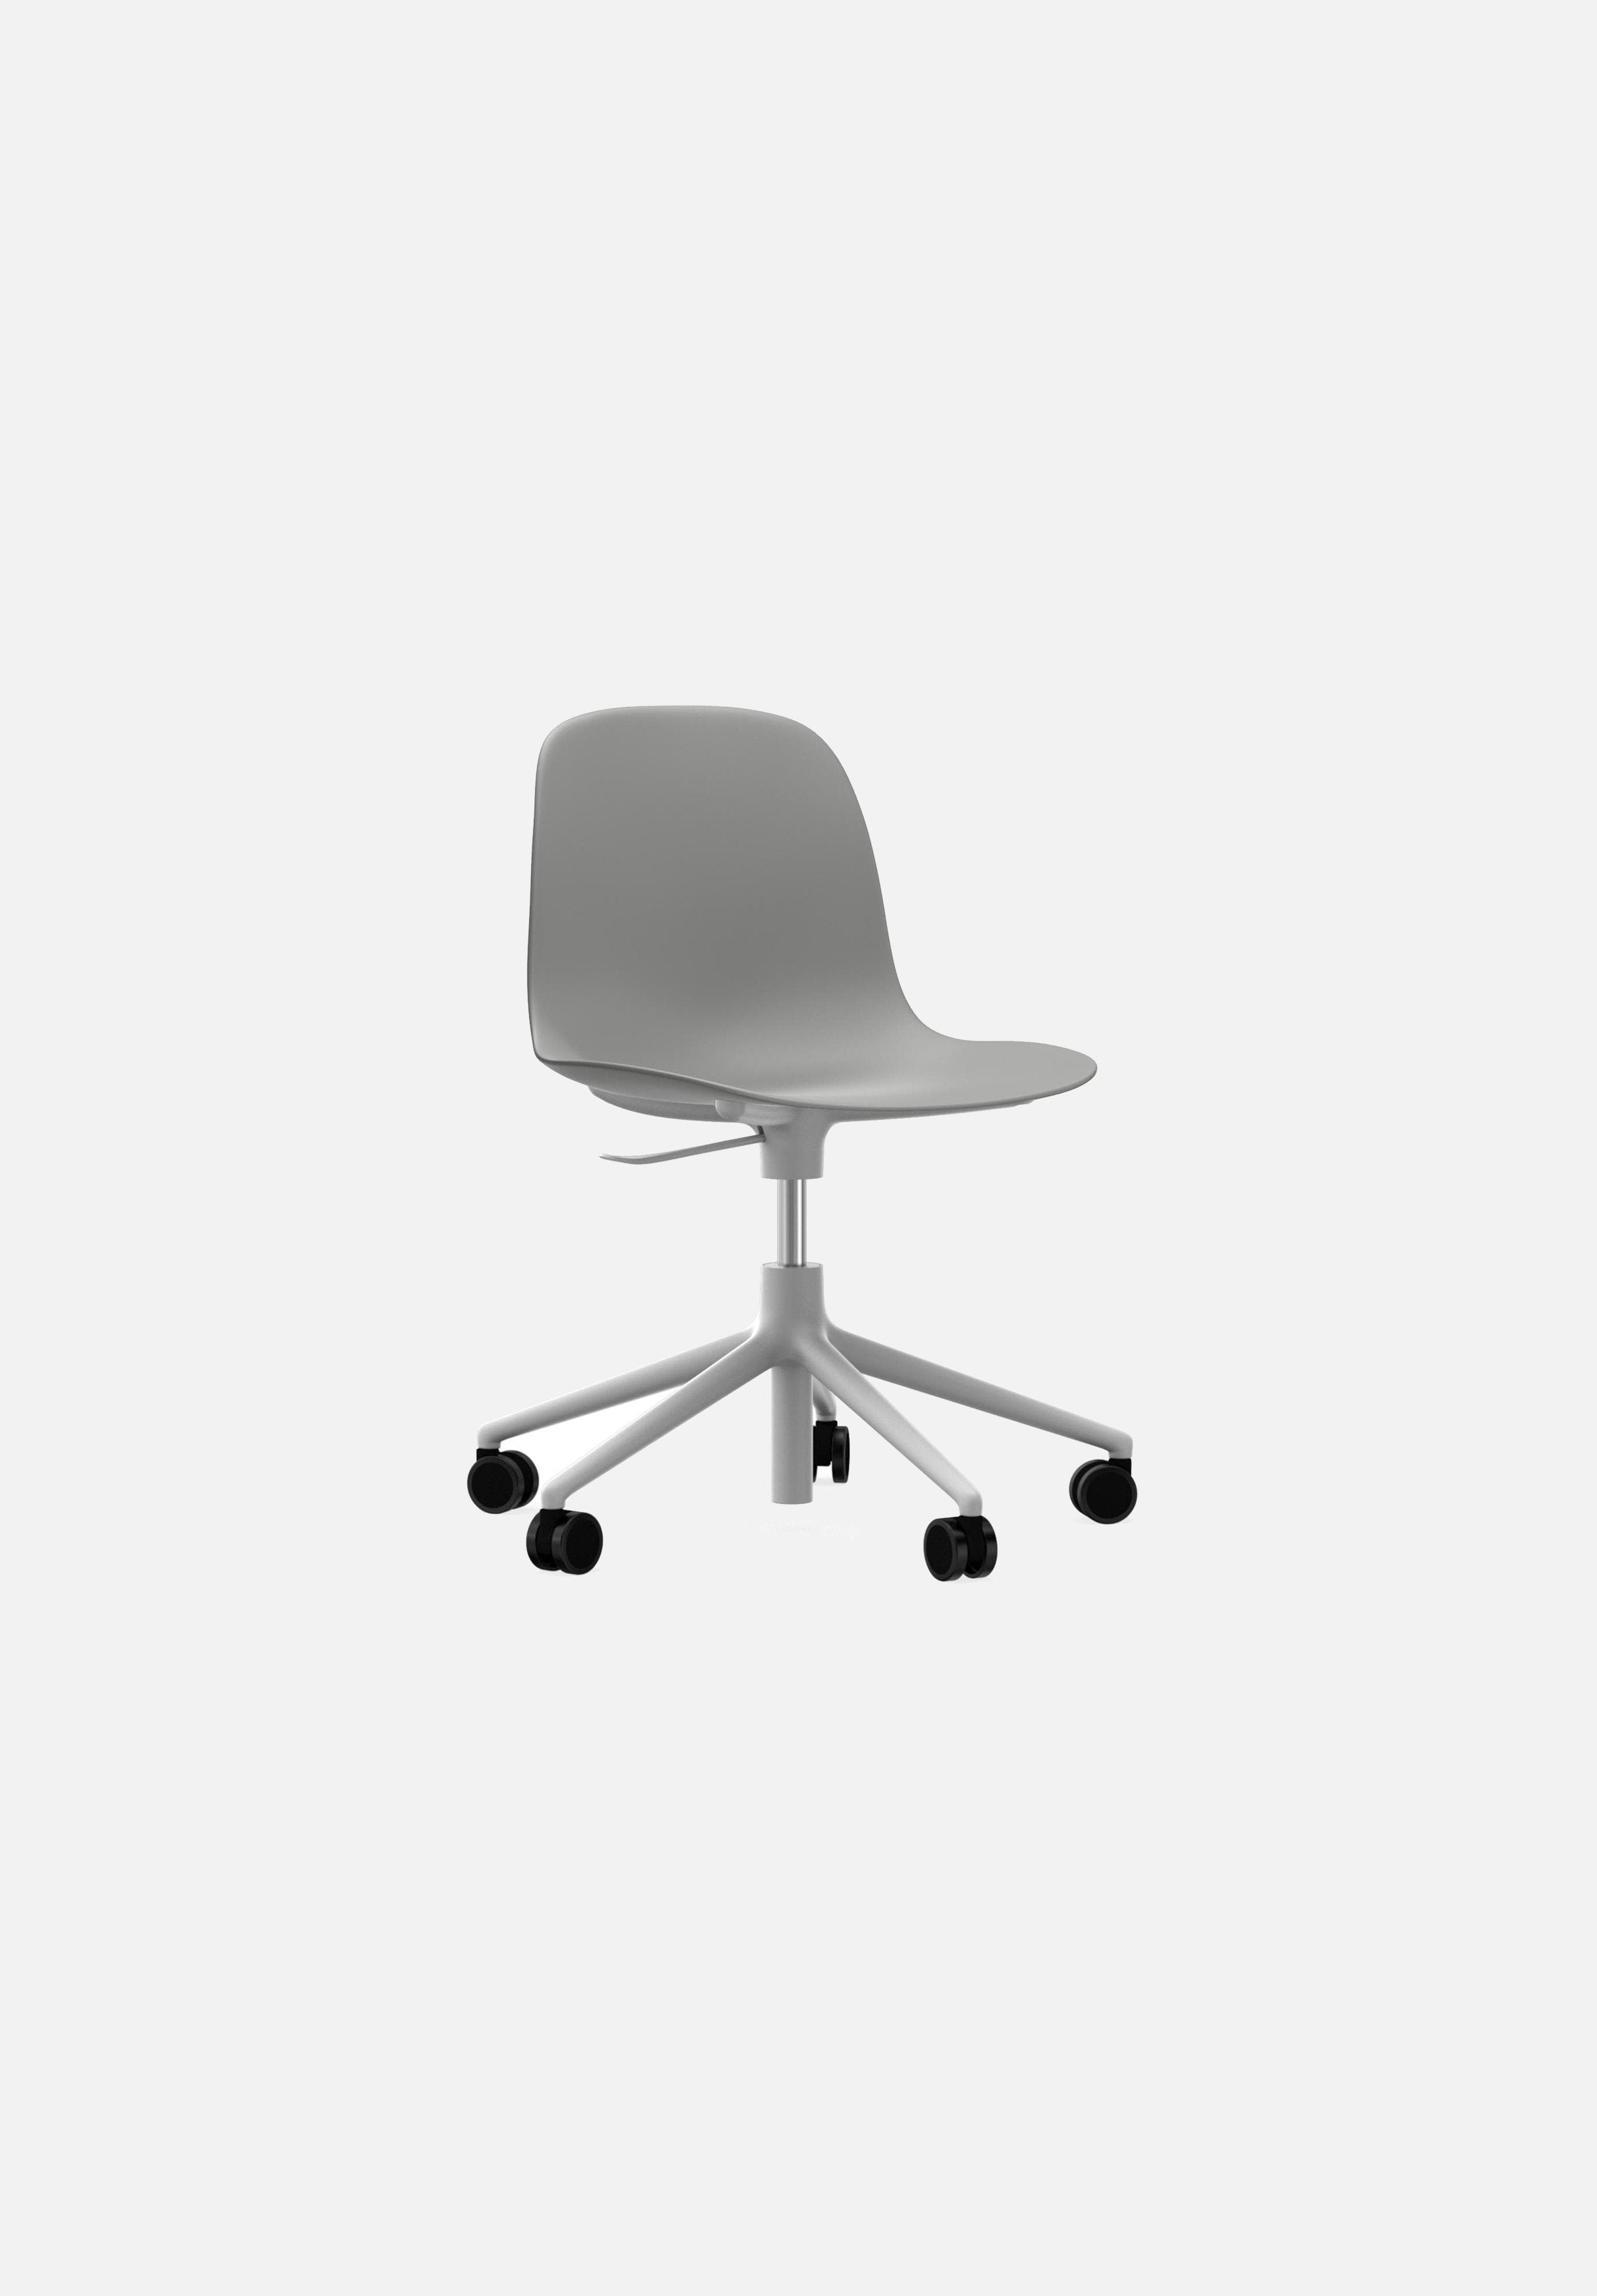 Form Chair — Swivel Gaslift-Simon Legald-Normann Copenhagen-Grey-White Aluminum-Average-canada-design-store-danish-denmark-furniture-interior